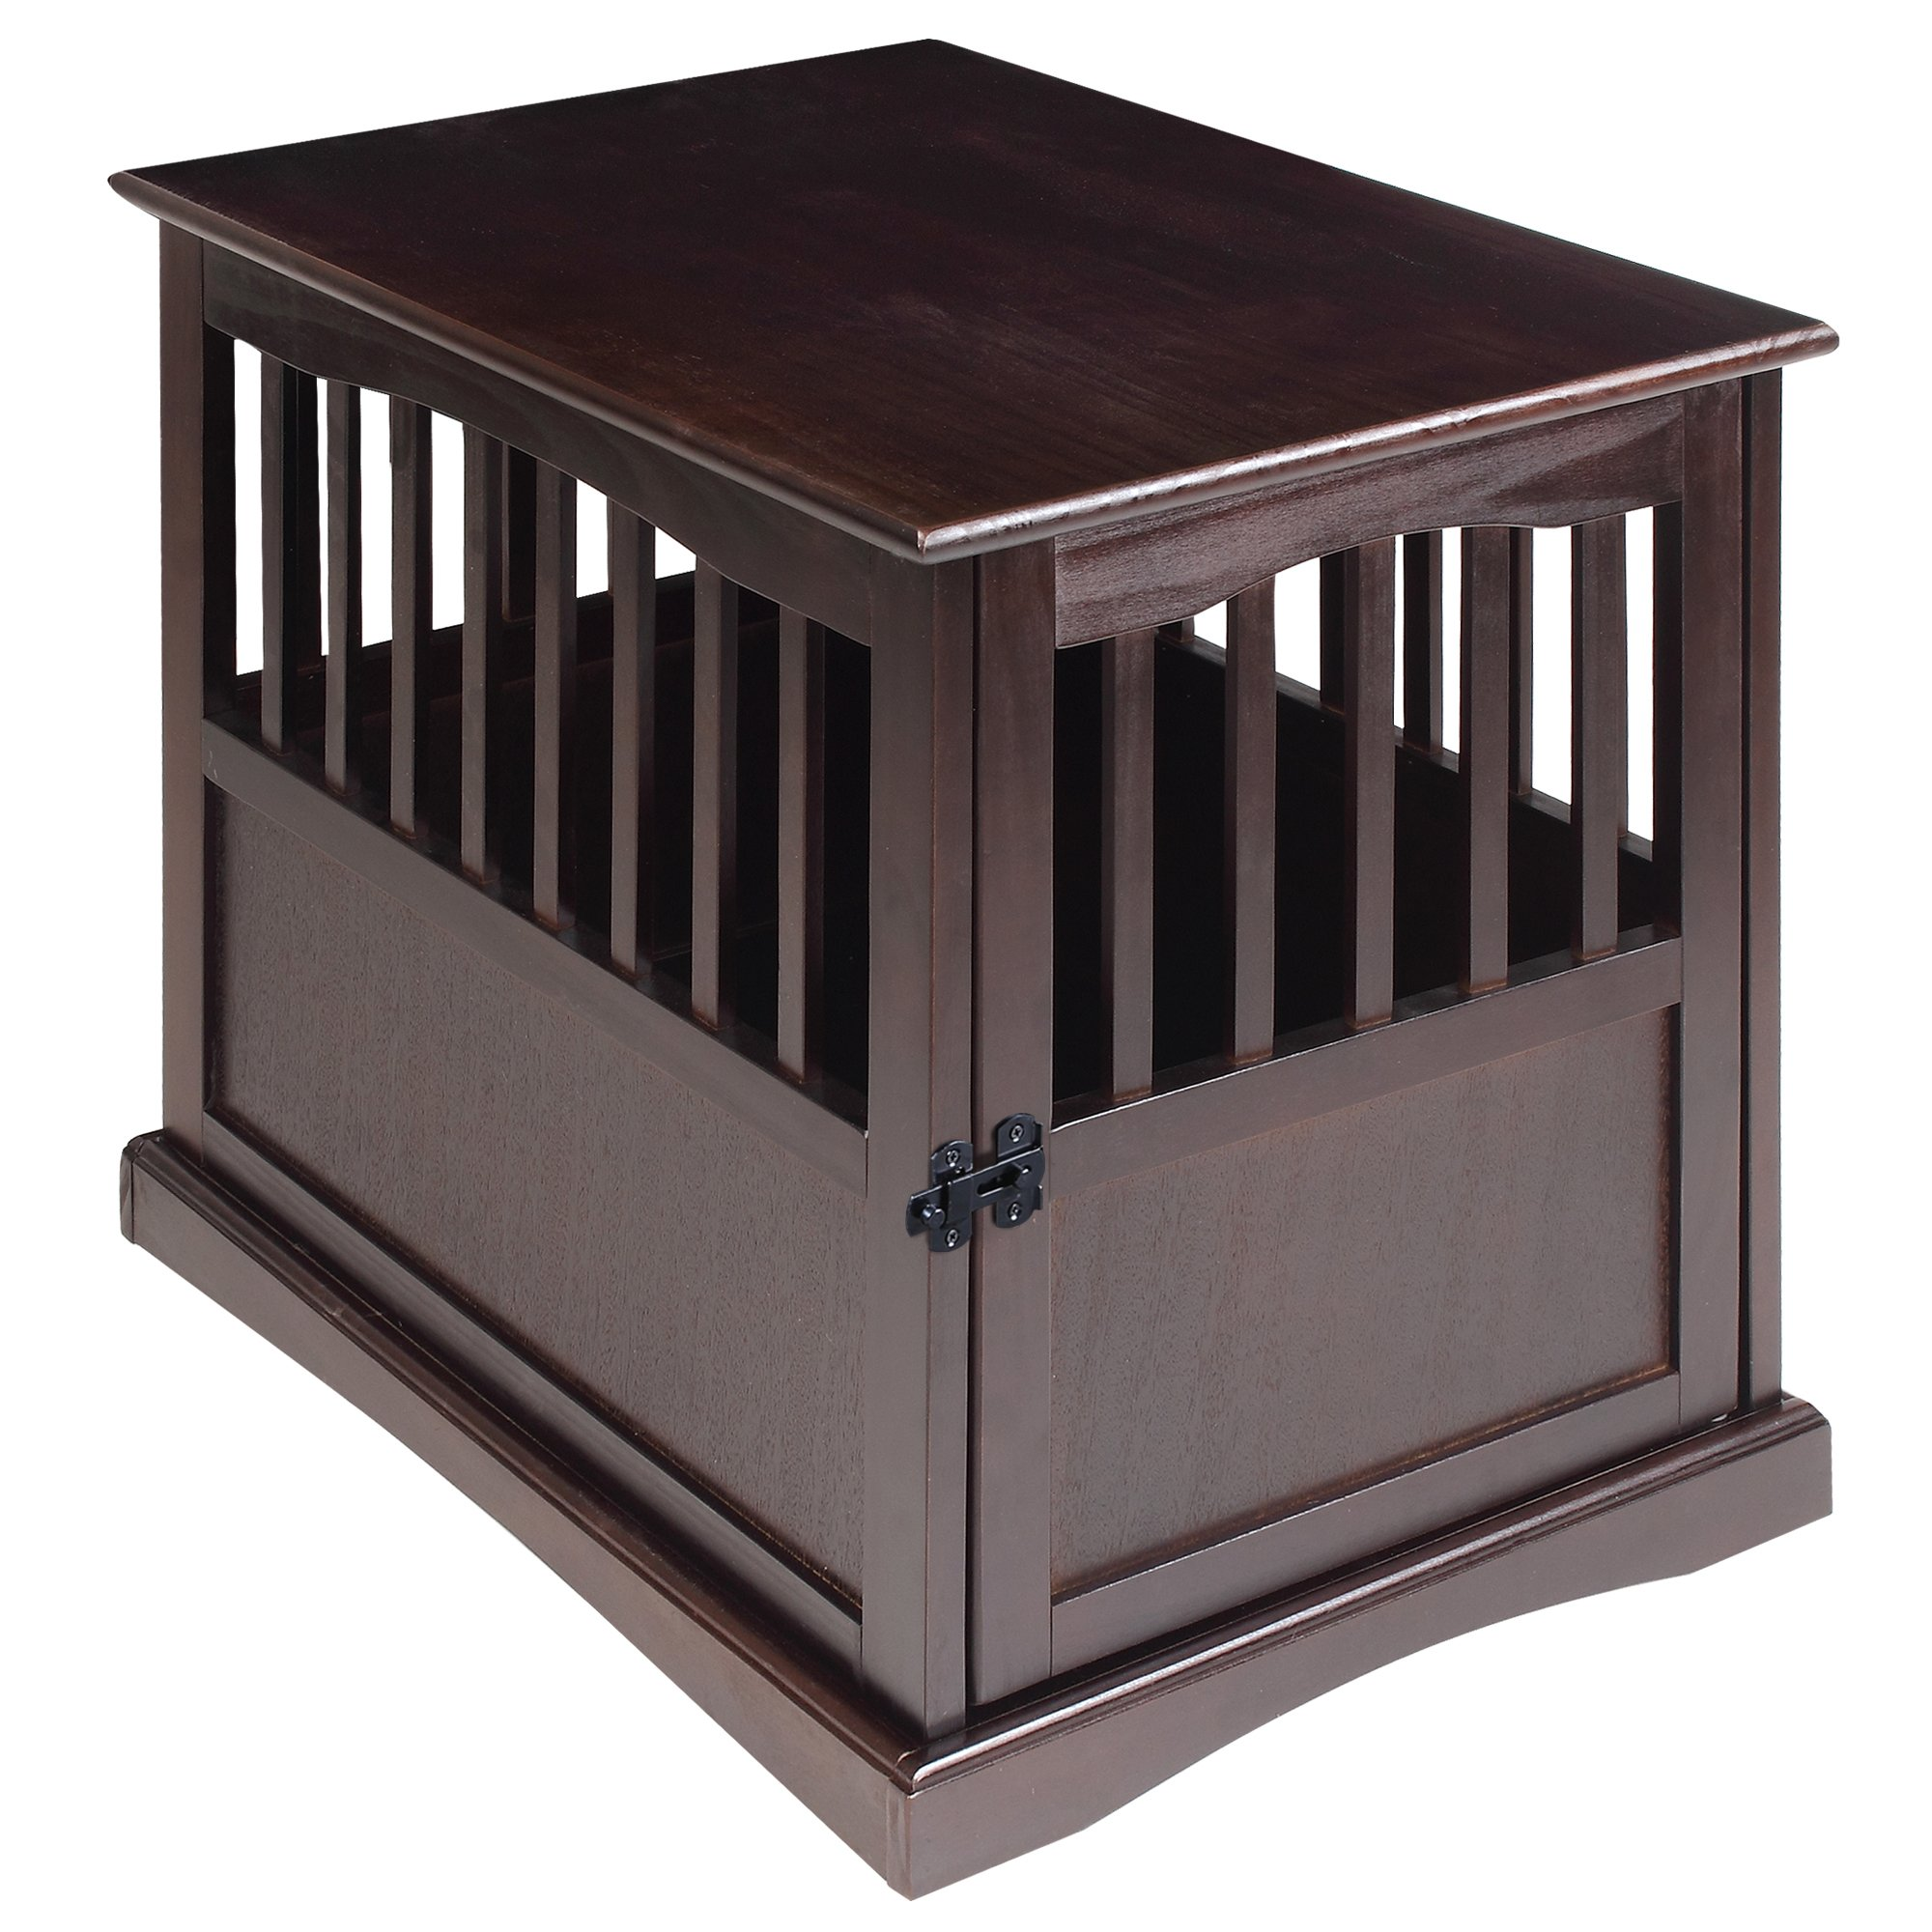 Casual Home 600-44 End Table, 24-Inch Pet Crate, 20'' W x 27.5'' D x H, Espresso by Casual Home